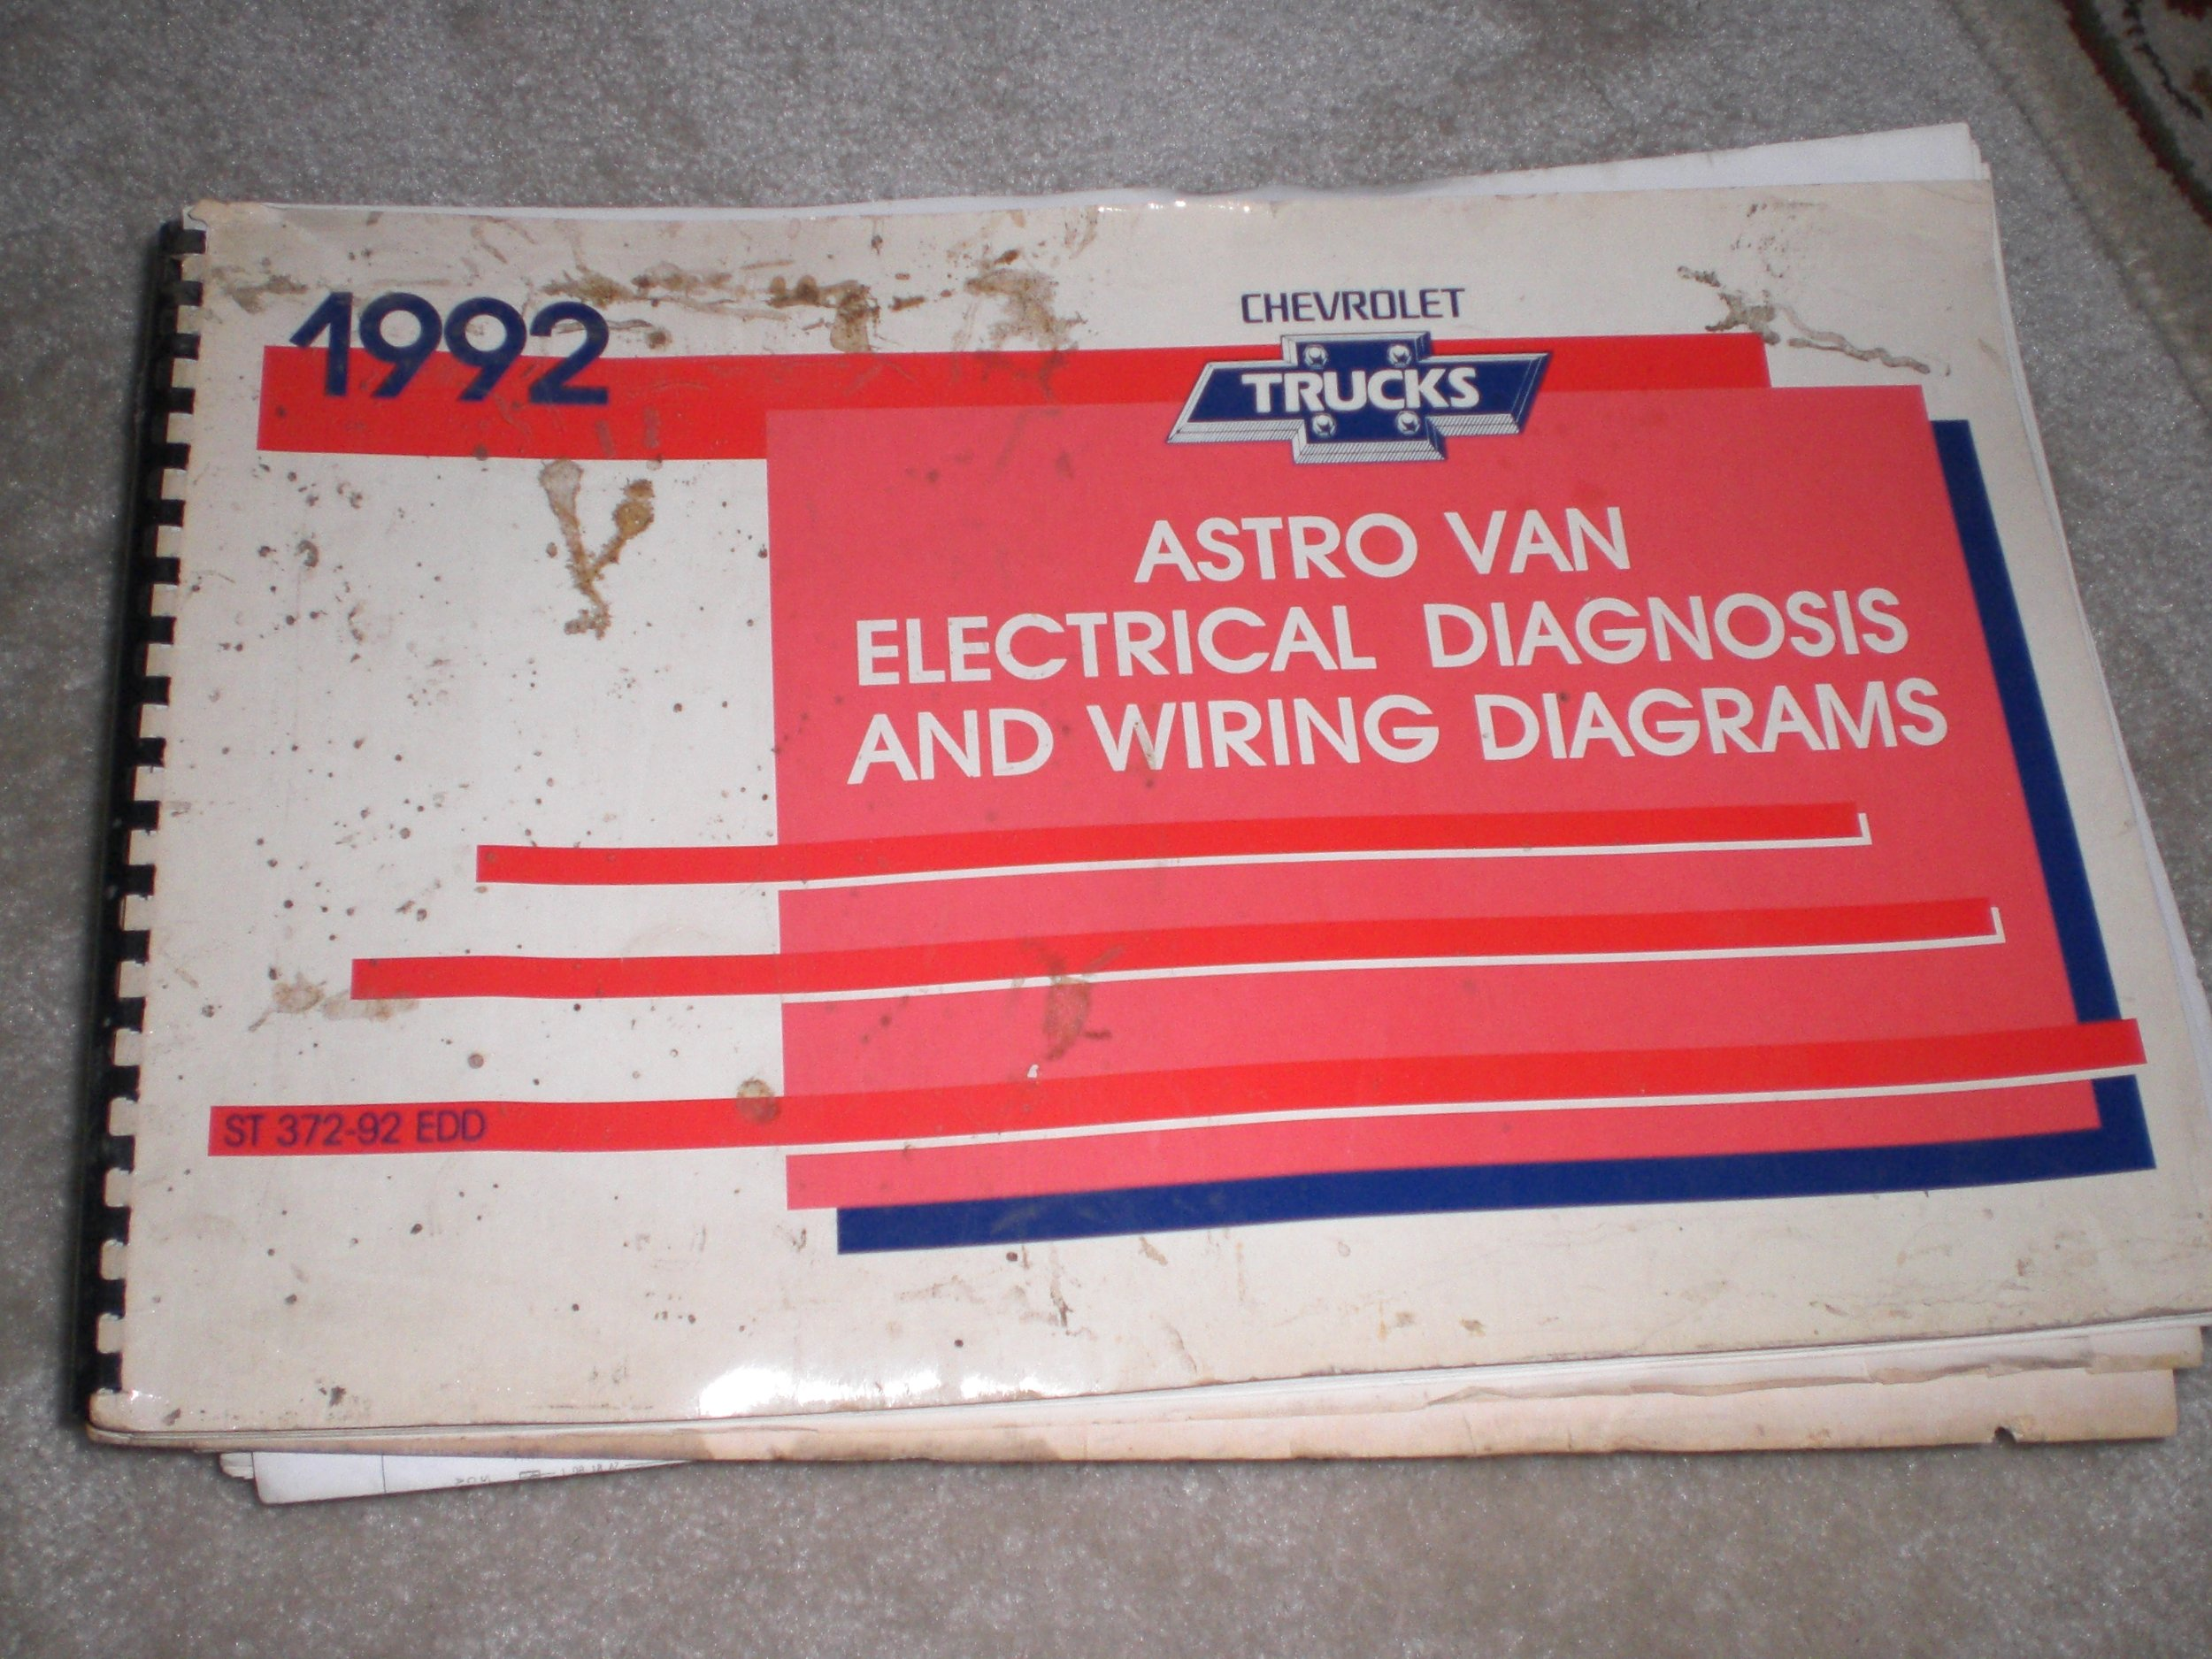 1992 astro van electrical diagnosis and wiring diagrams chevrolet Chevy Astro Van Wiring Diagram